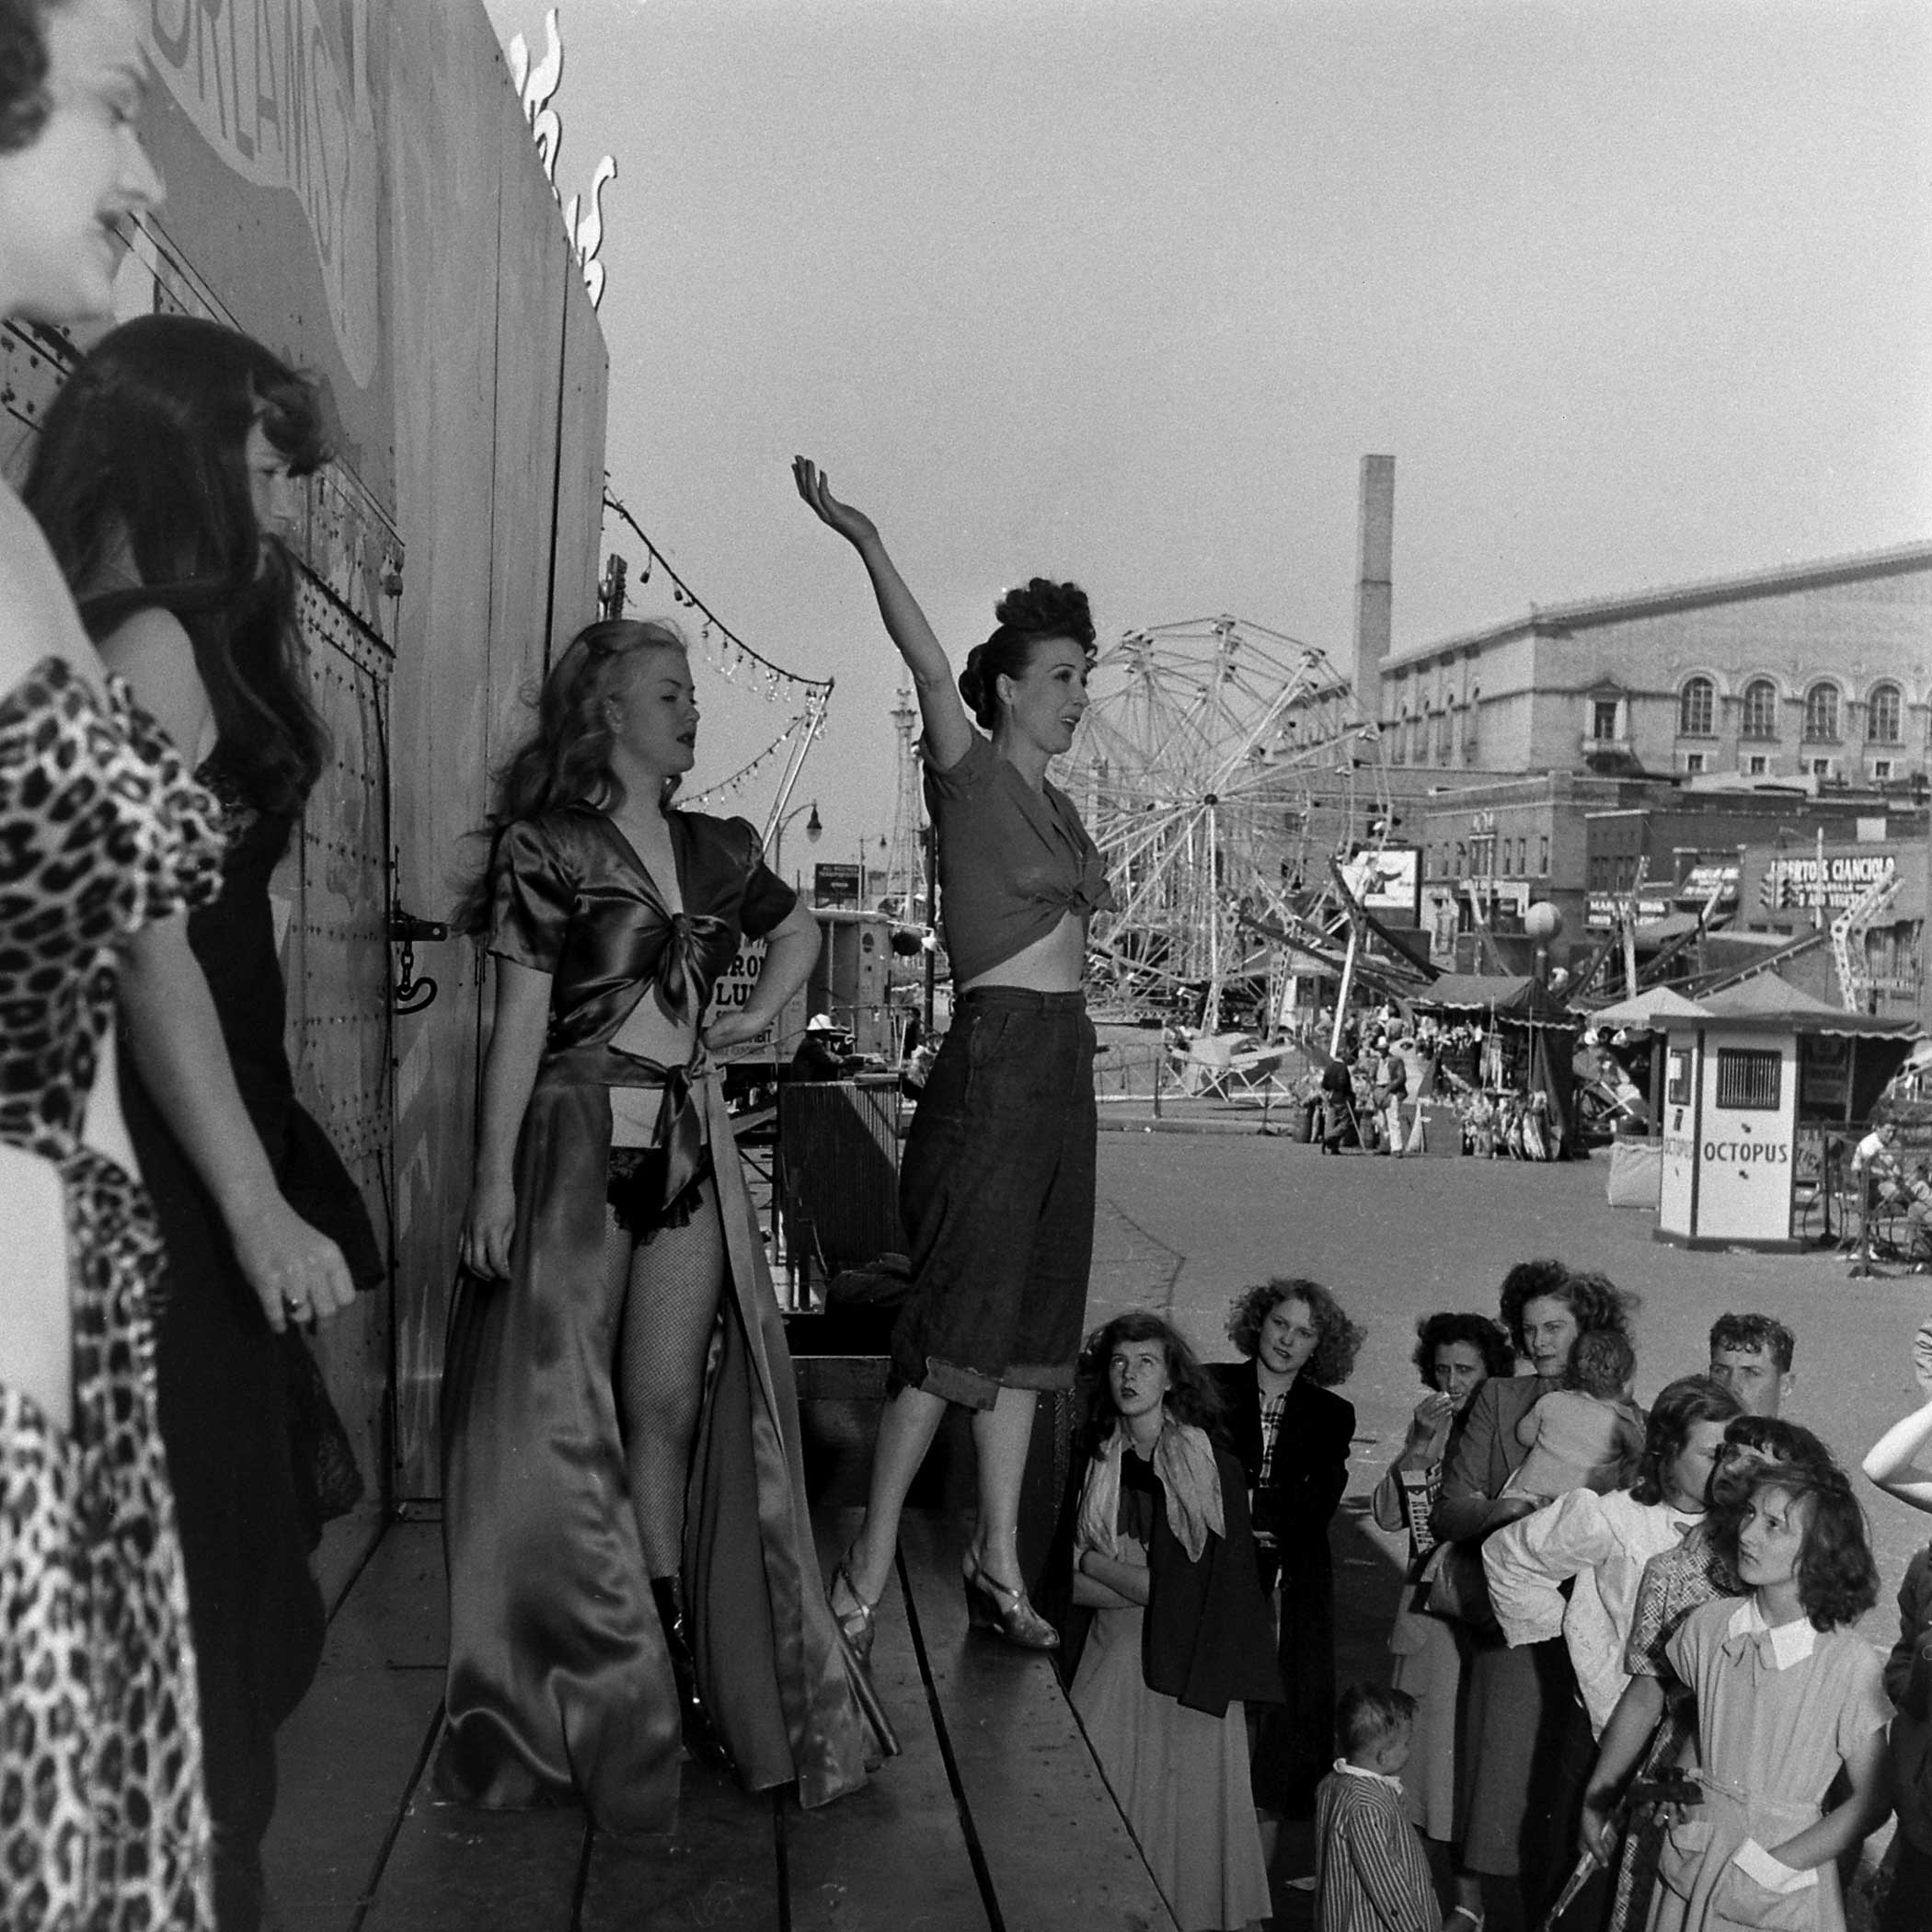 <b>Not published in LIFE.</b> Burlesque star Gypsy Rose Lee with fellow performers in Memphis, Tenn., 1949.